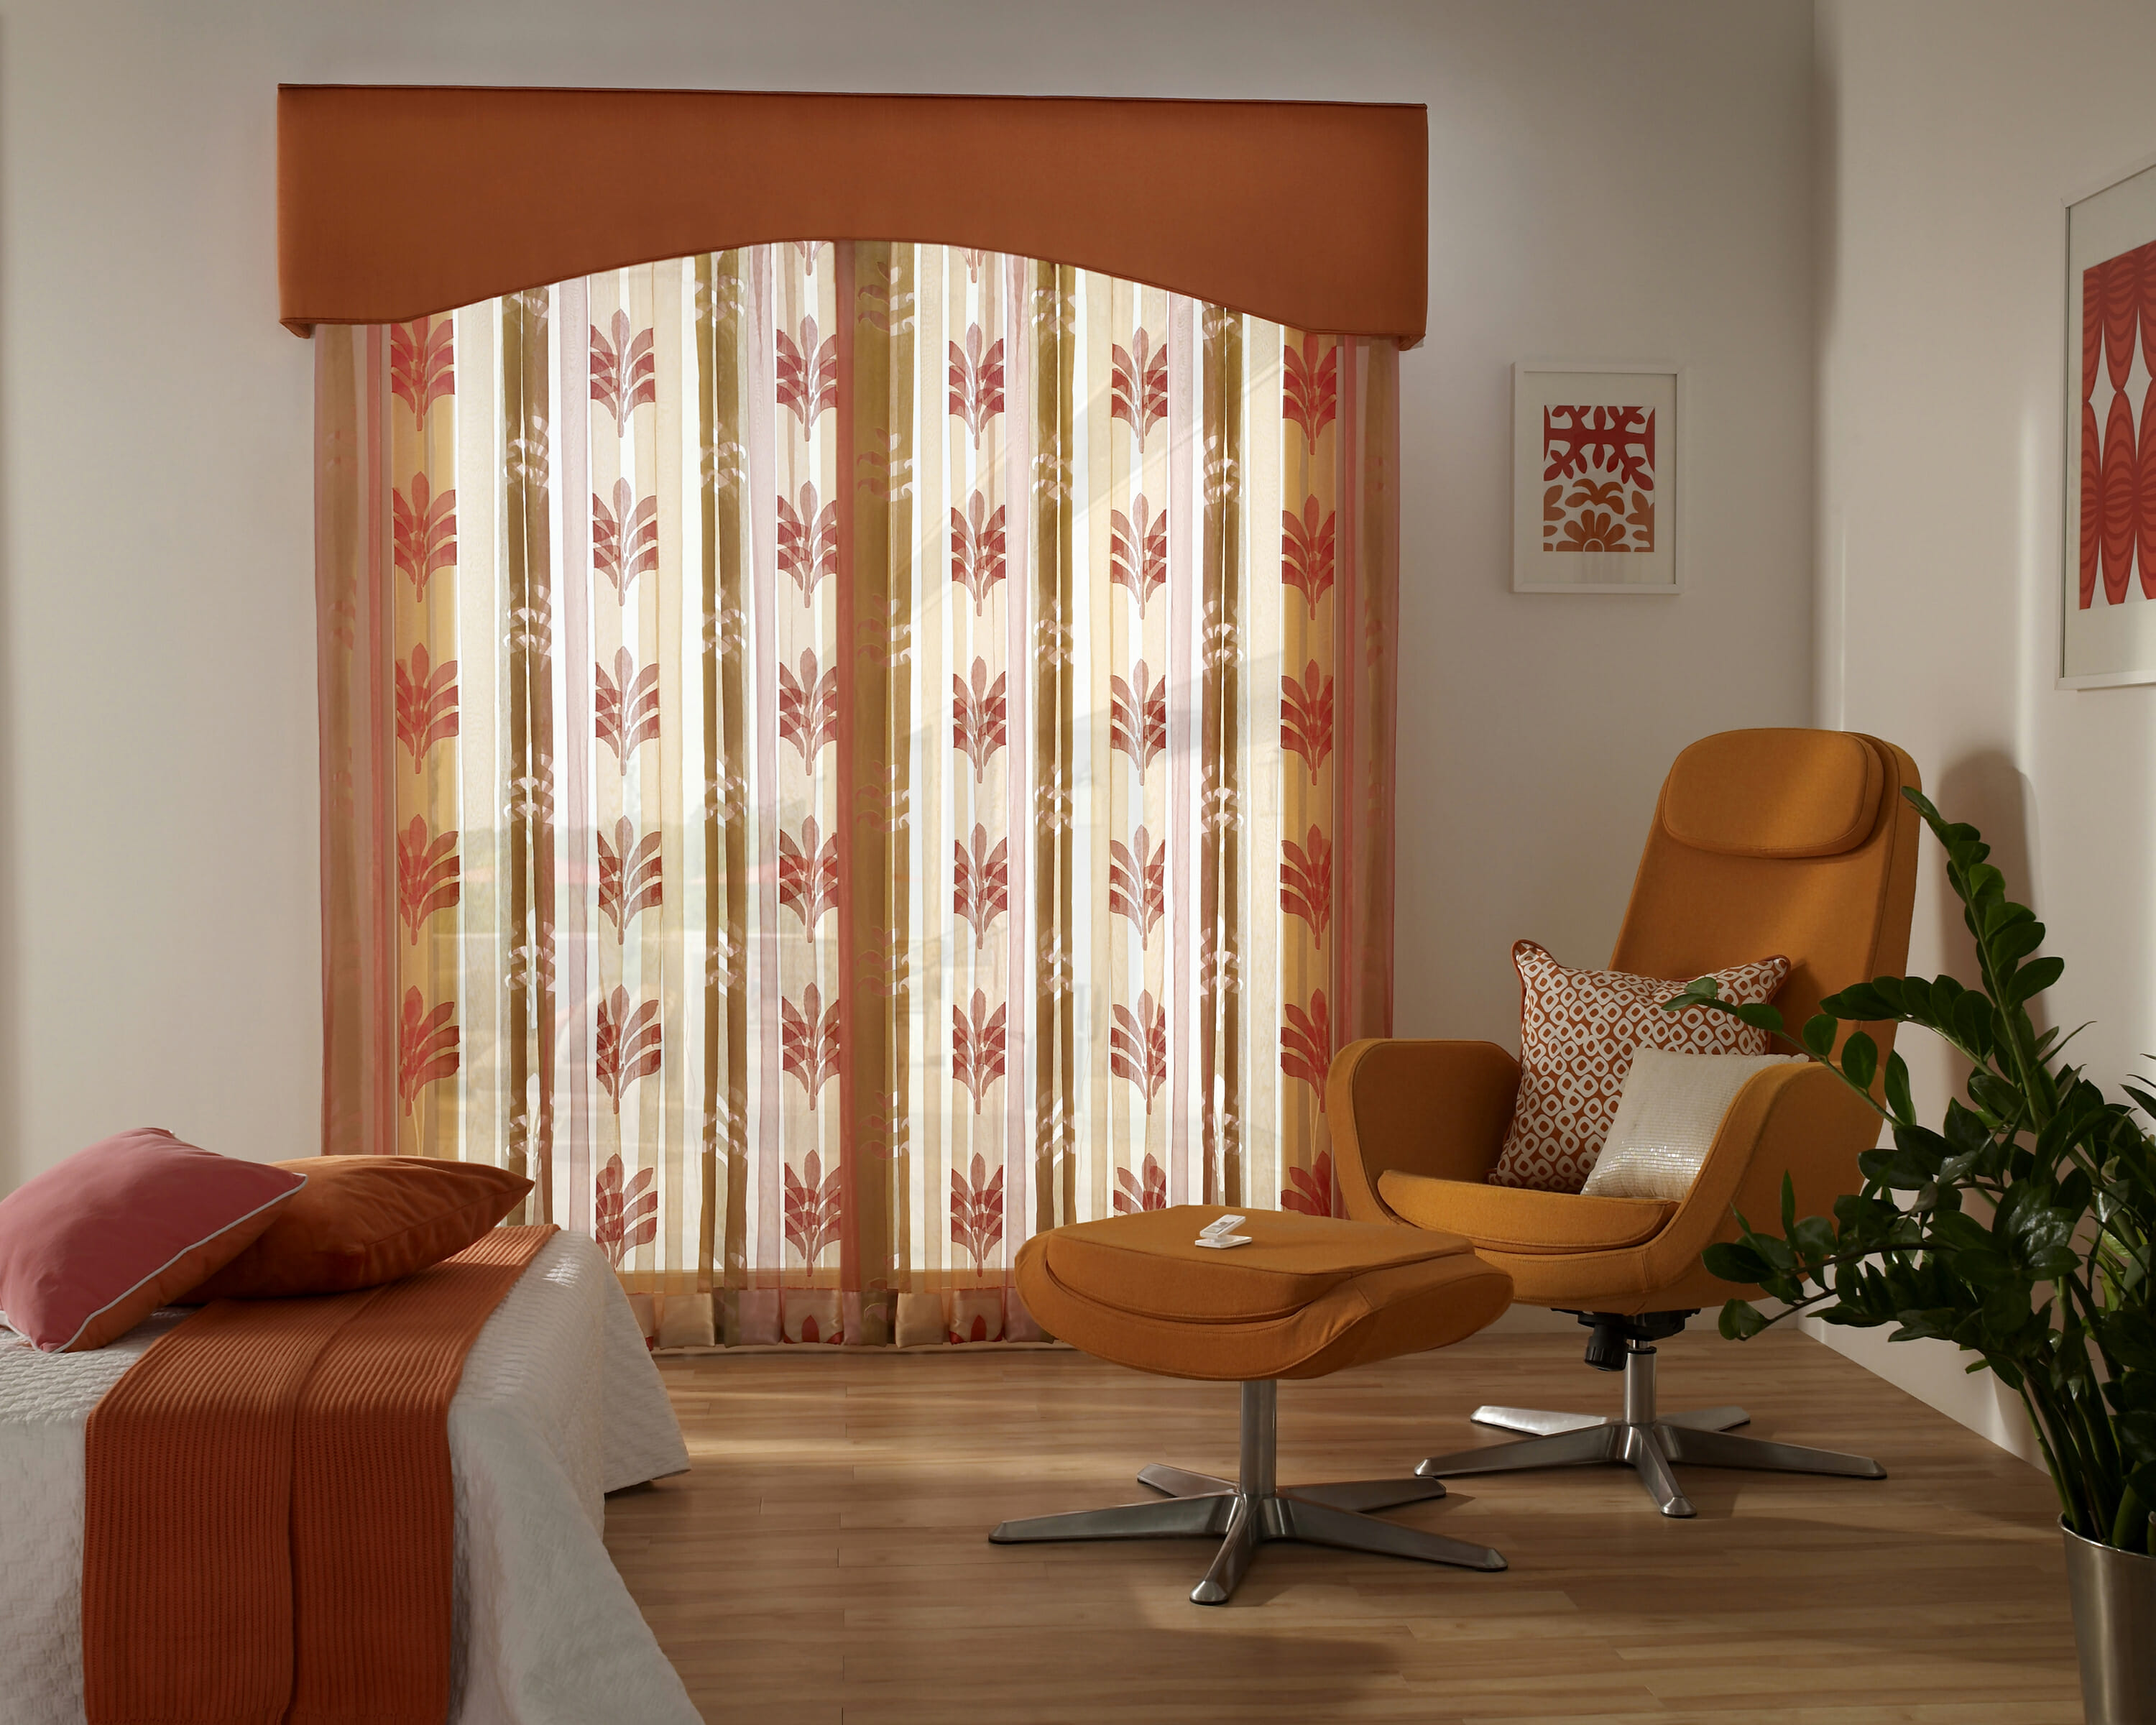 Kirbe Sheer Curtains U0026 Draperies With Motorization From Lutron